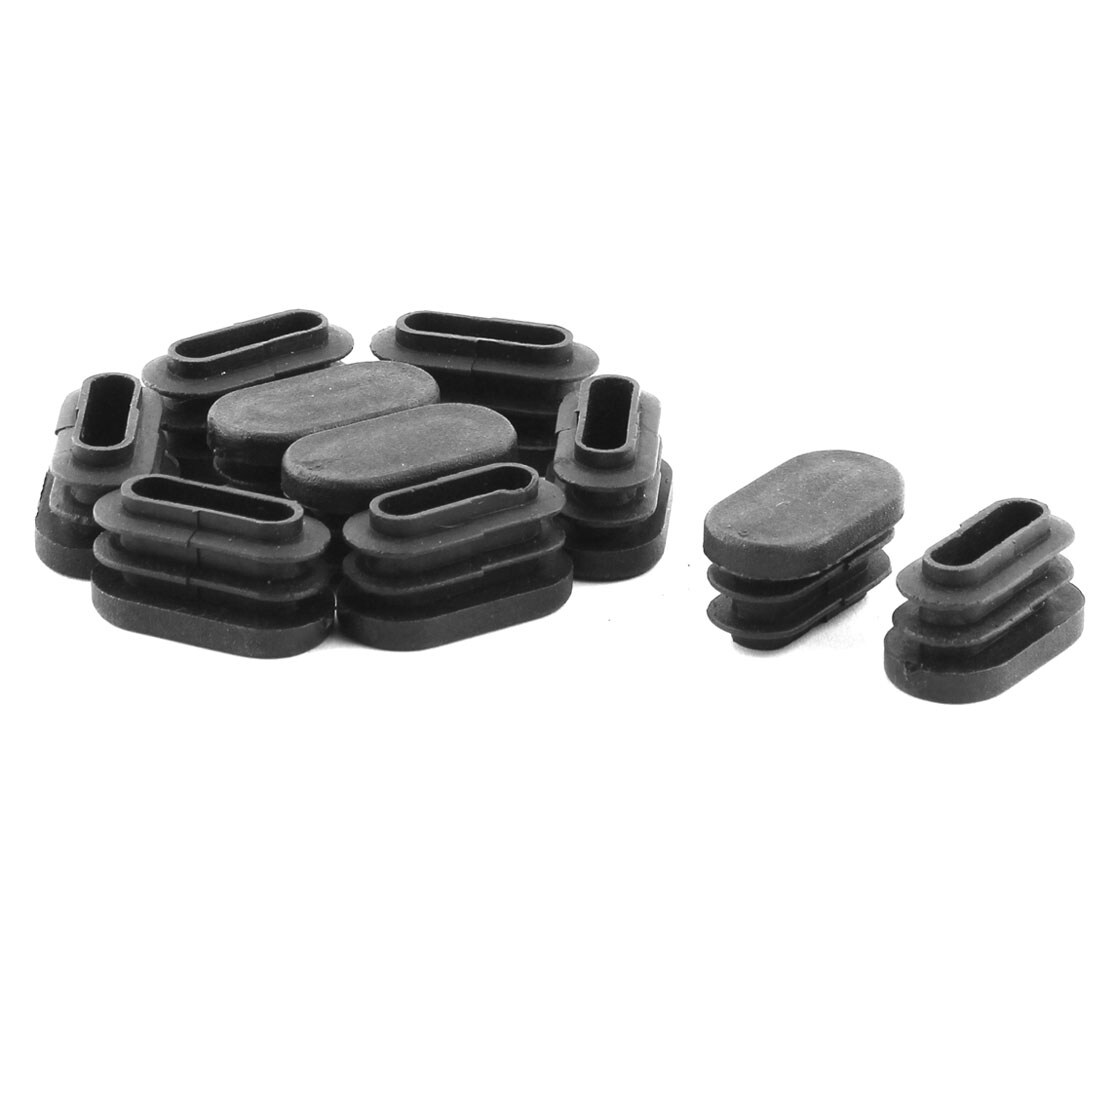 Caps For Chair Legs Home Chair Legs Plastic Flat Base Tube Pipe Inserts End Caps Black 10 Pcs